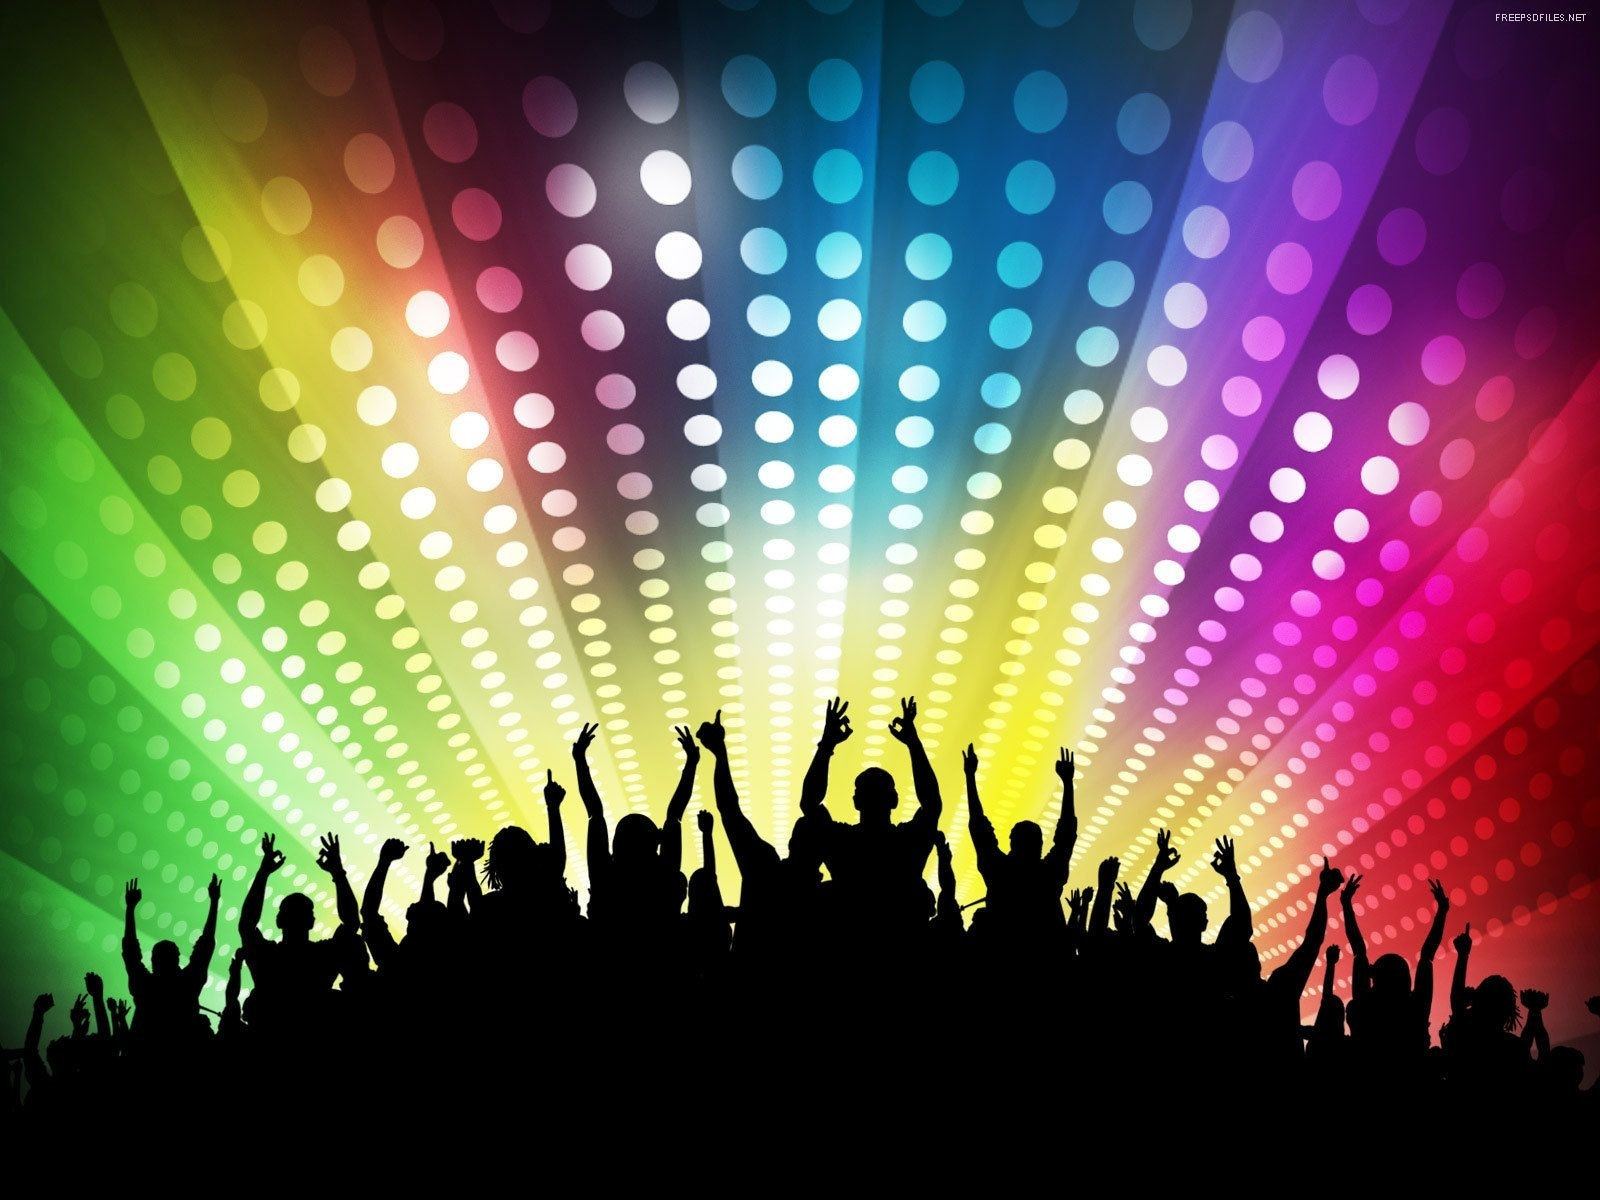 party – high quality hd wallpapers : hd quality 1080p, mgi53mgi